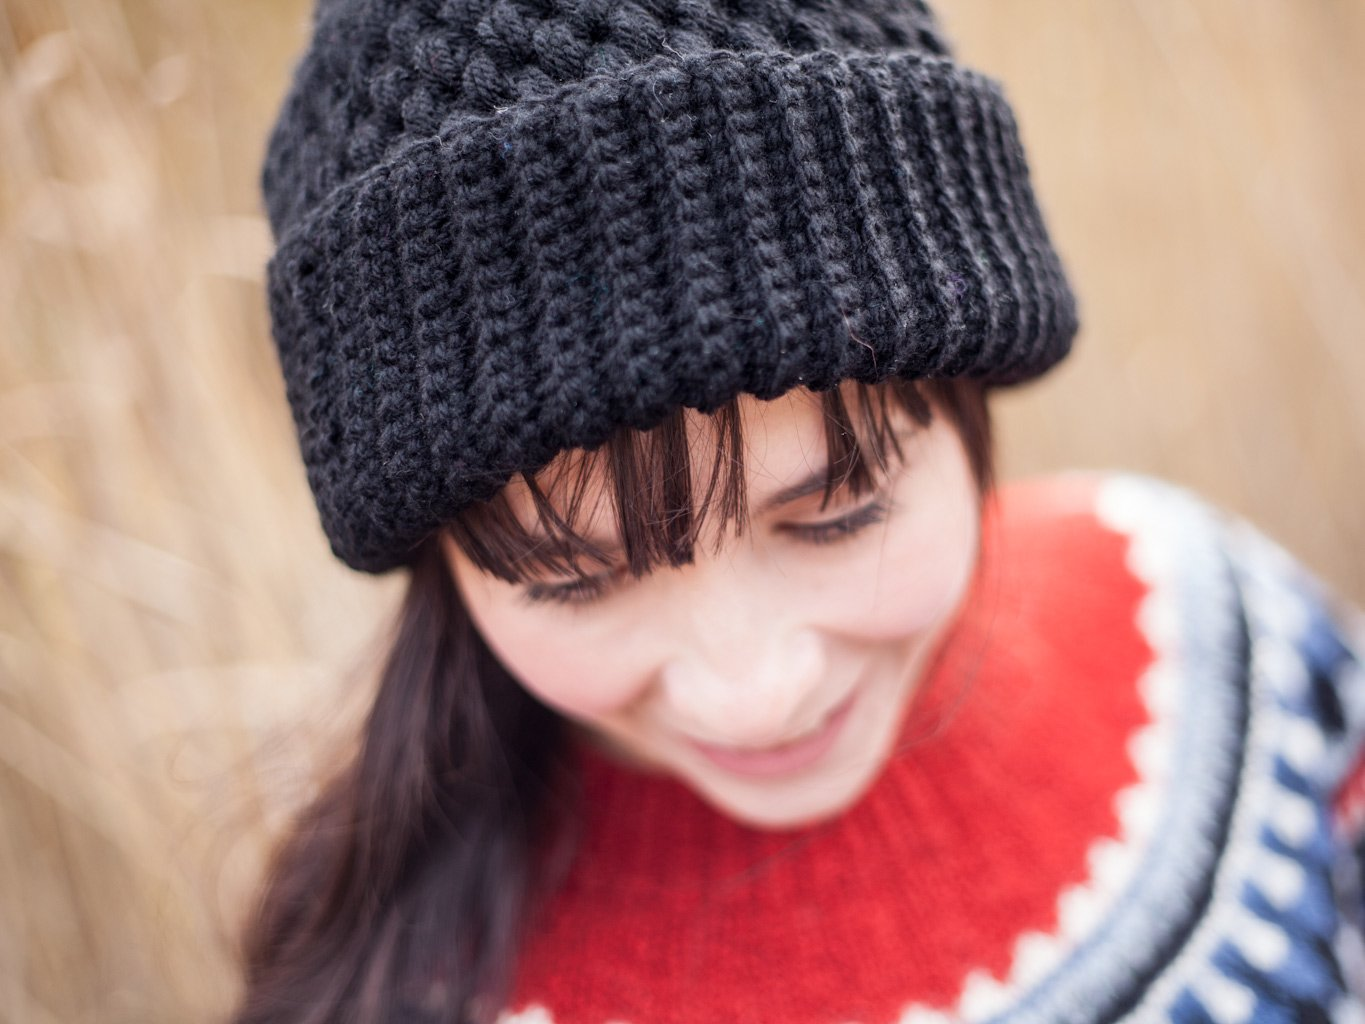 Smiling girl with double brimmed black beanie